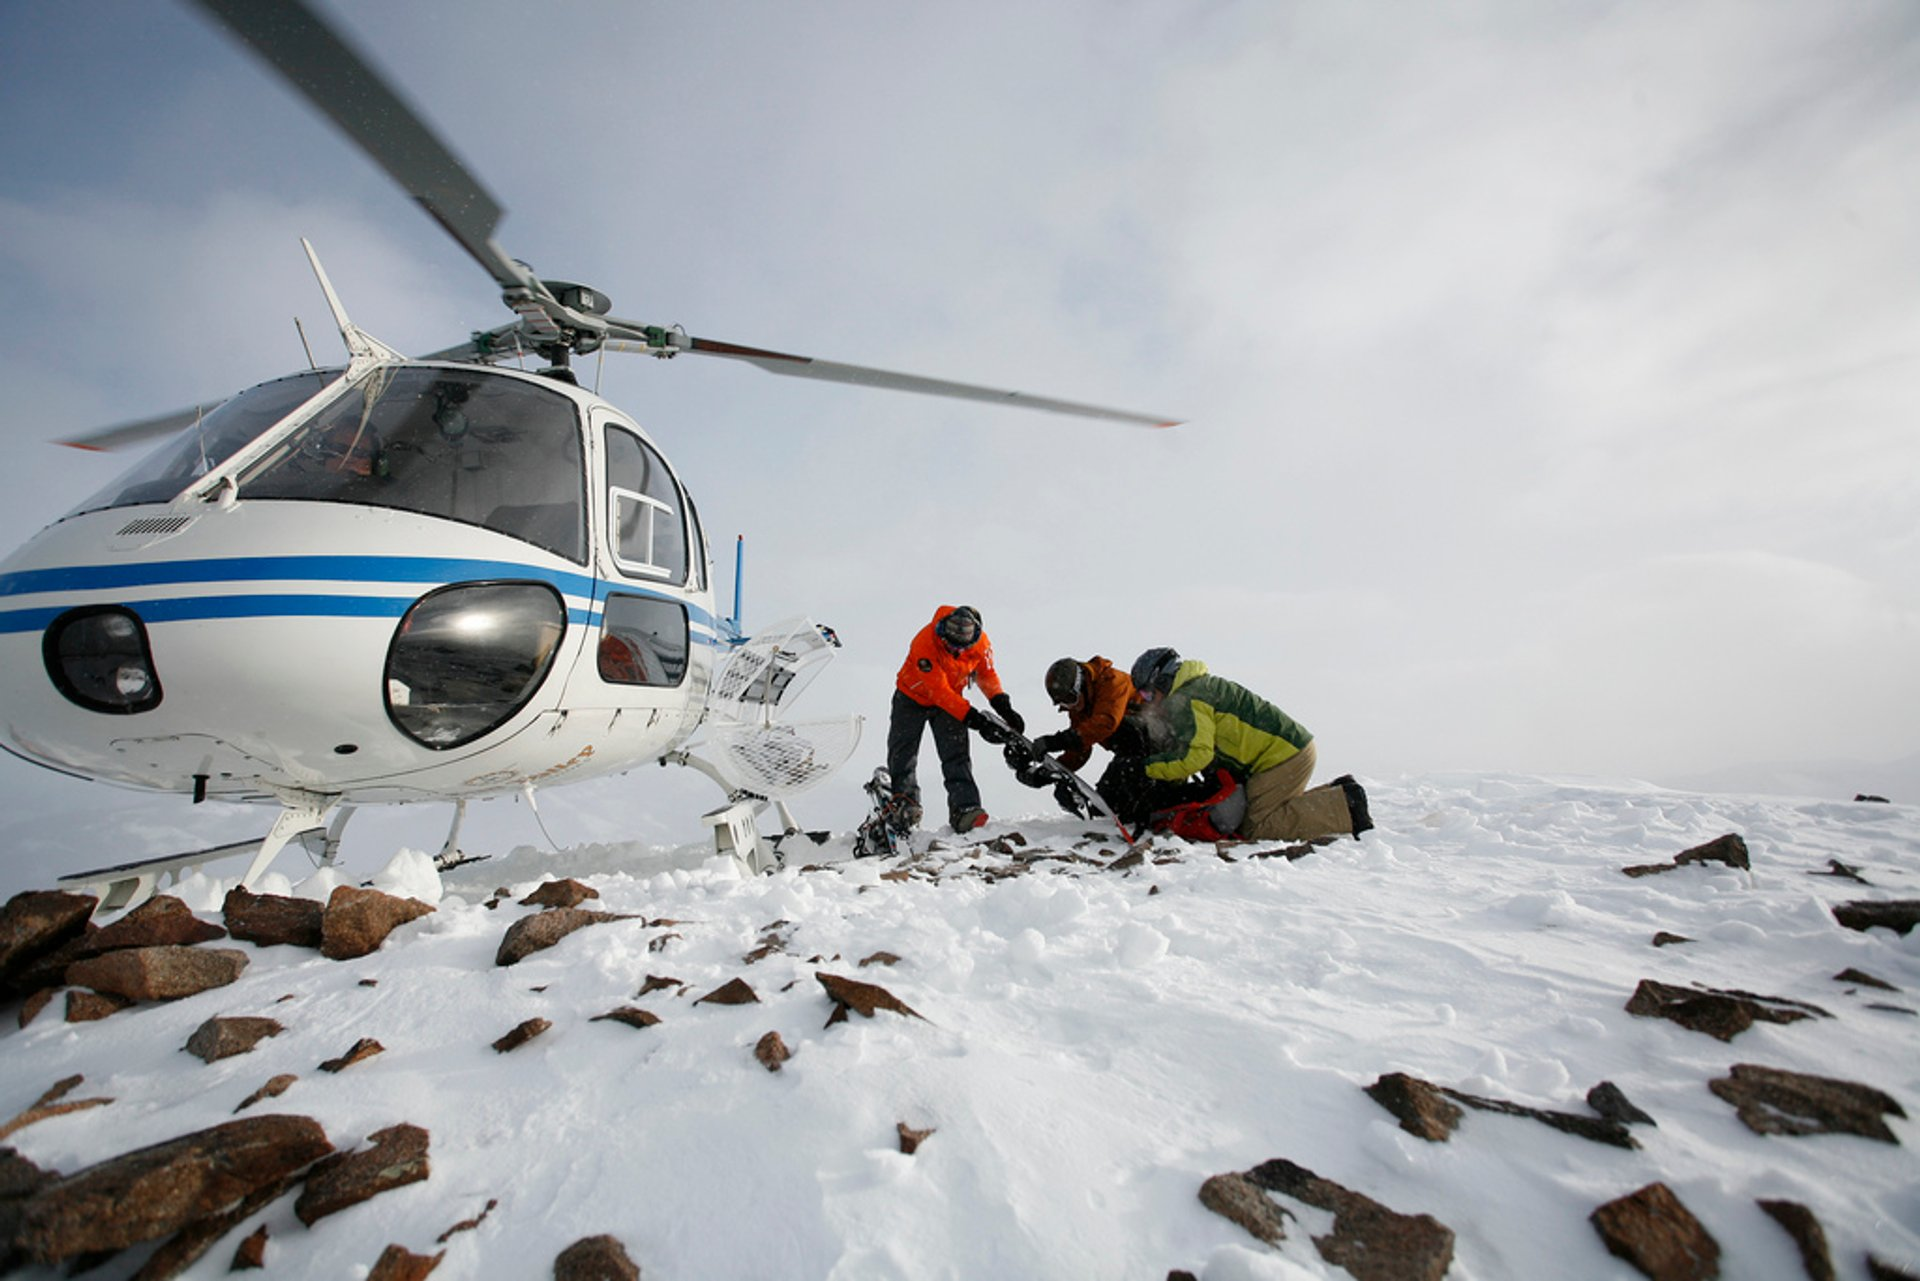 Best time for Heliskiing in Alaska 2019